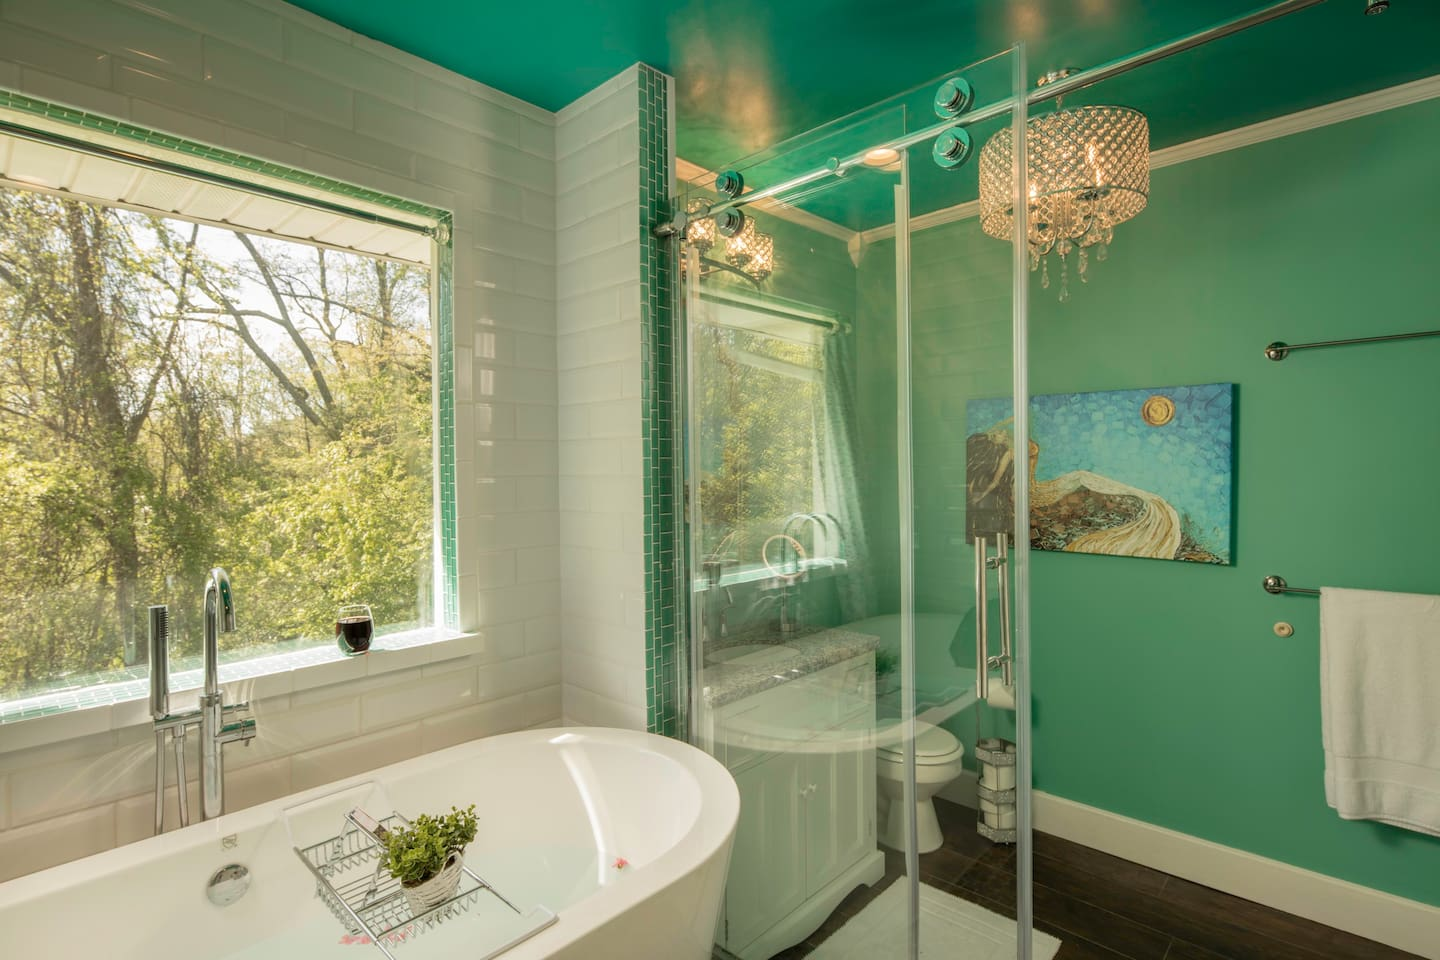 2 person soaker tub with view of the backyard, completely private - no neighbors behind us!